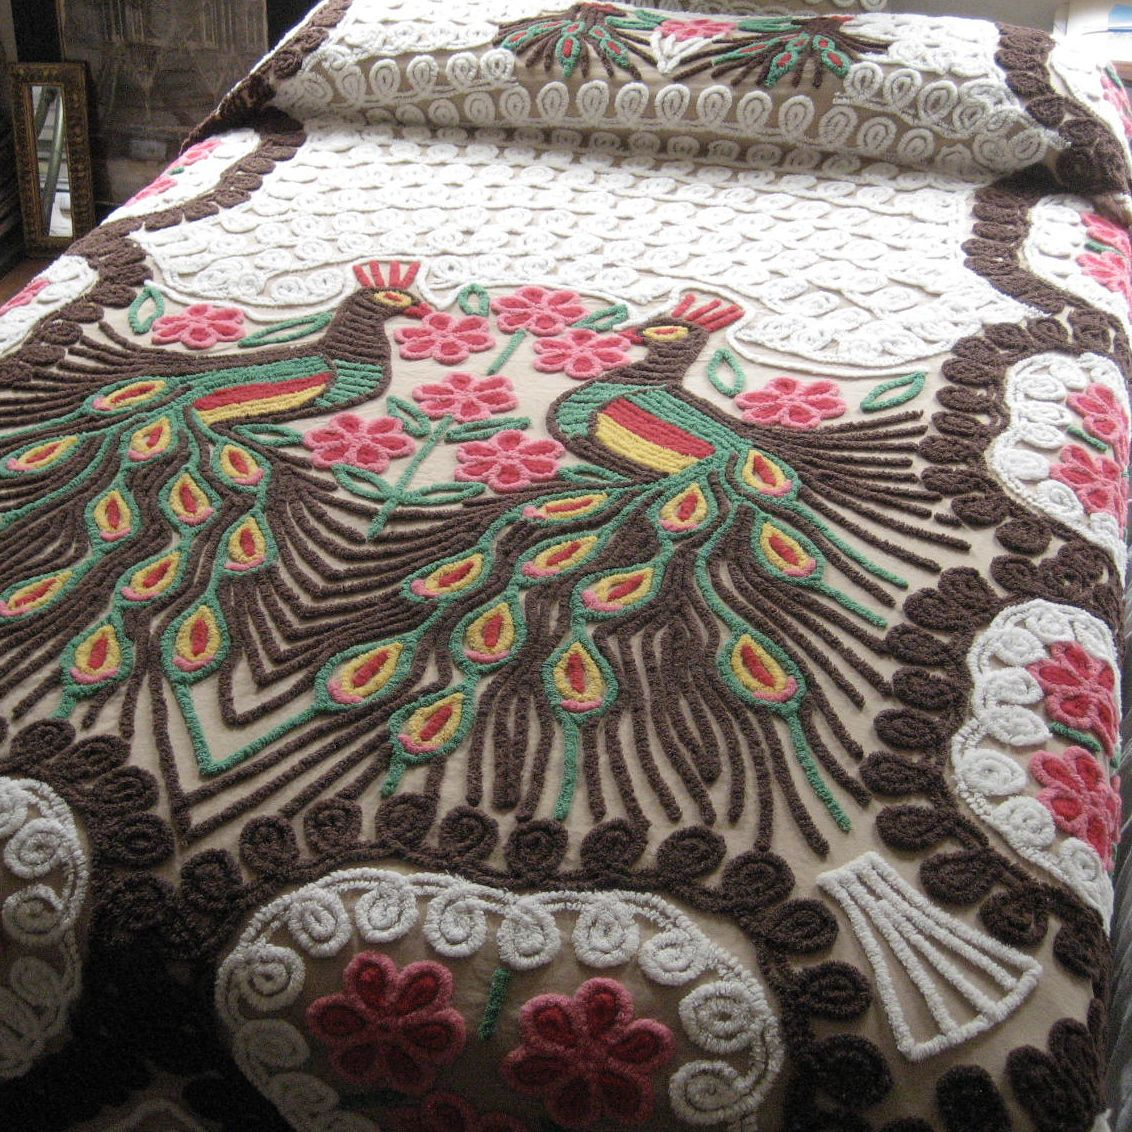 how to care for vintage chenille bedspreads - Chenille Bedspreads